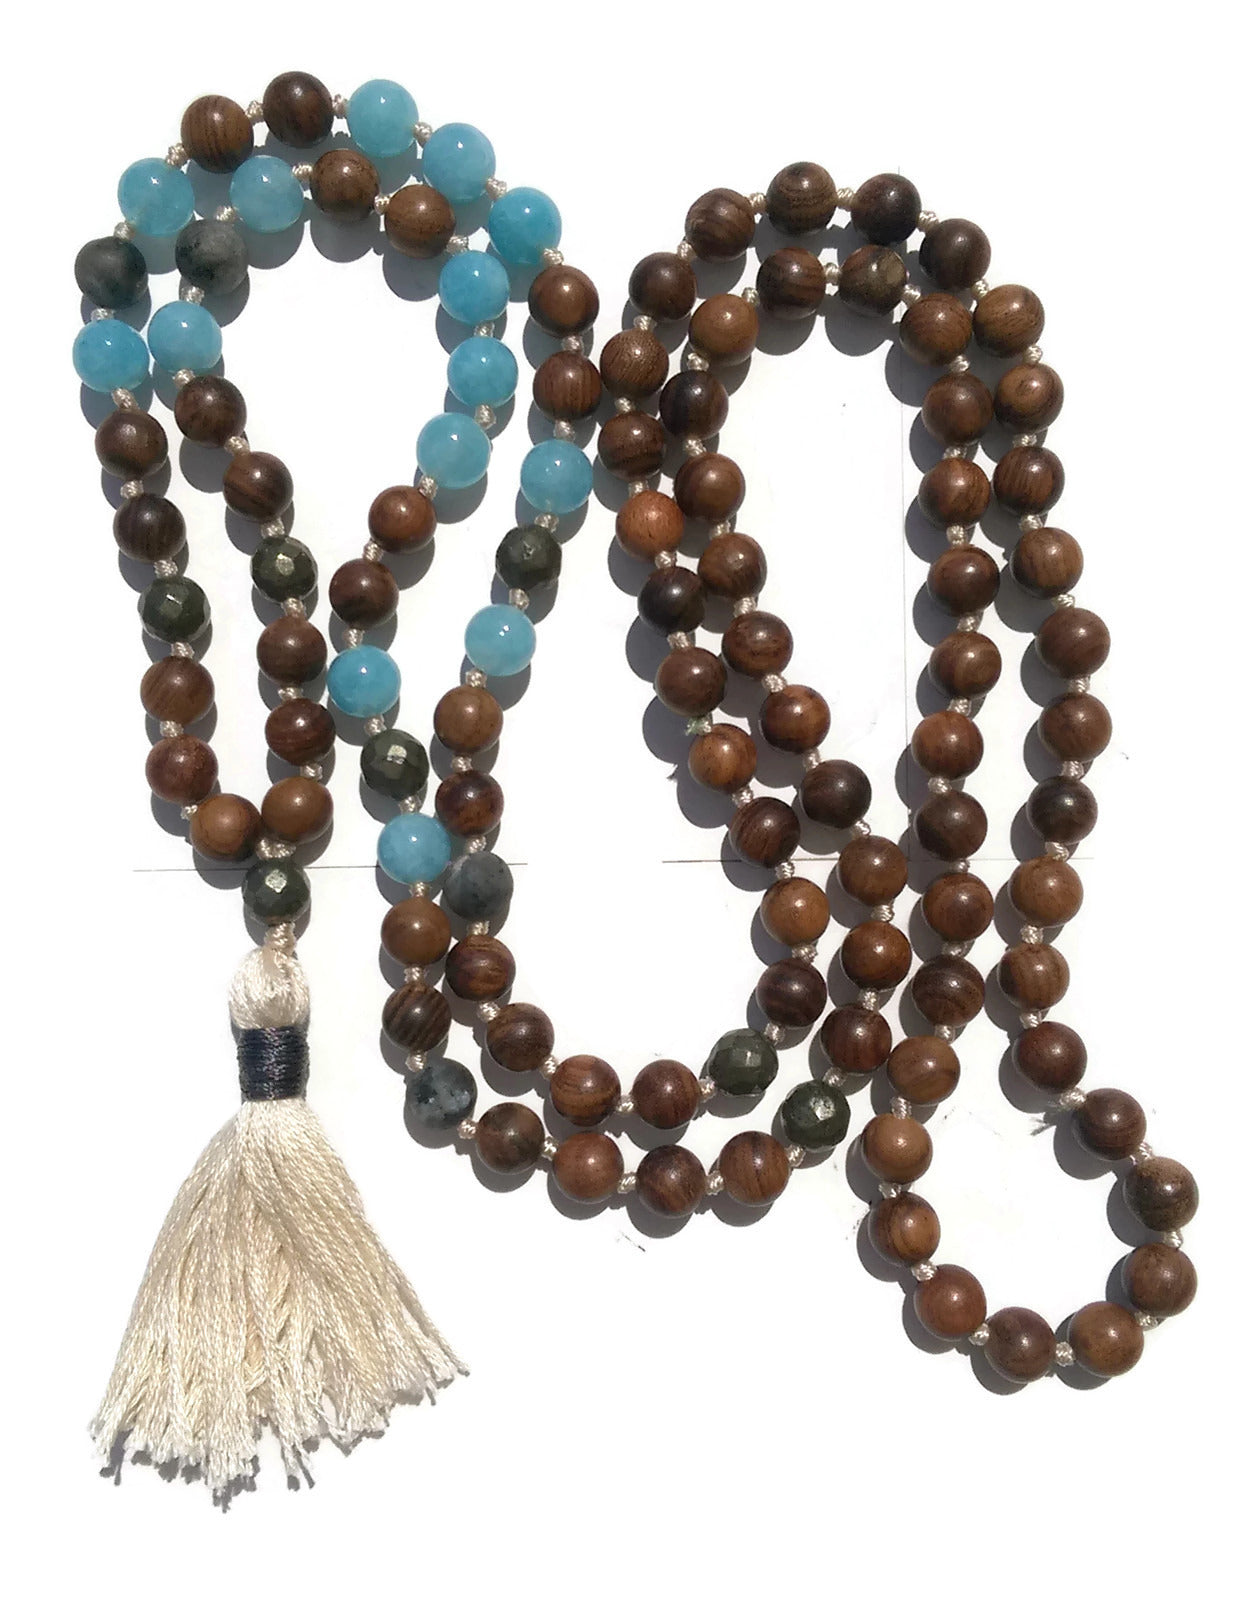 Pure Collection 8mm Pear Wood Aquamarine Labradorite Pyrite Traditional Hand Knotted 108 Bead Meditation Mala Necklace Throat Chakra Yoga